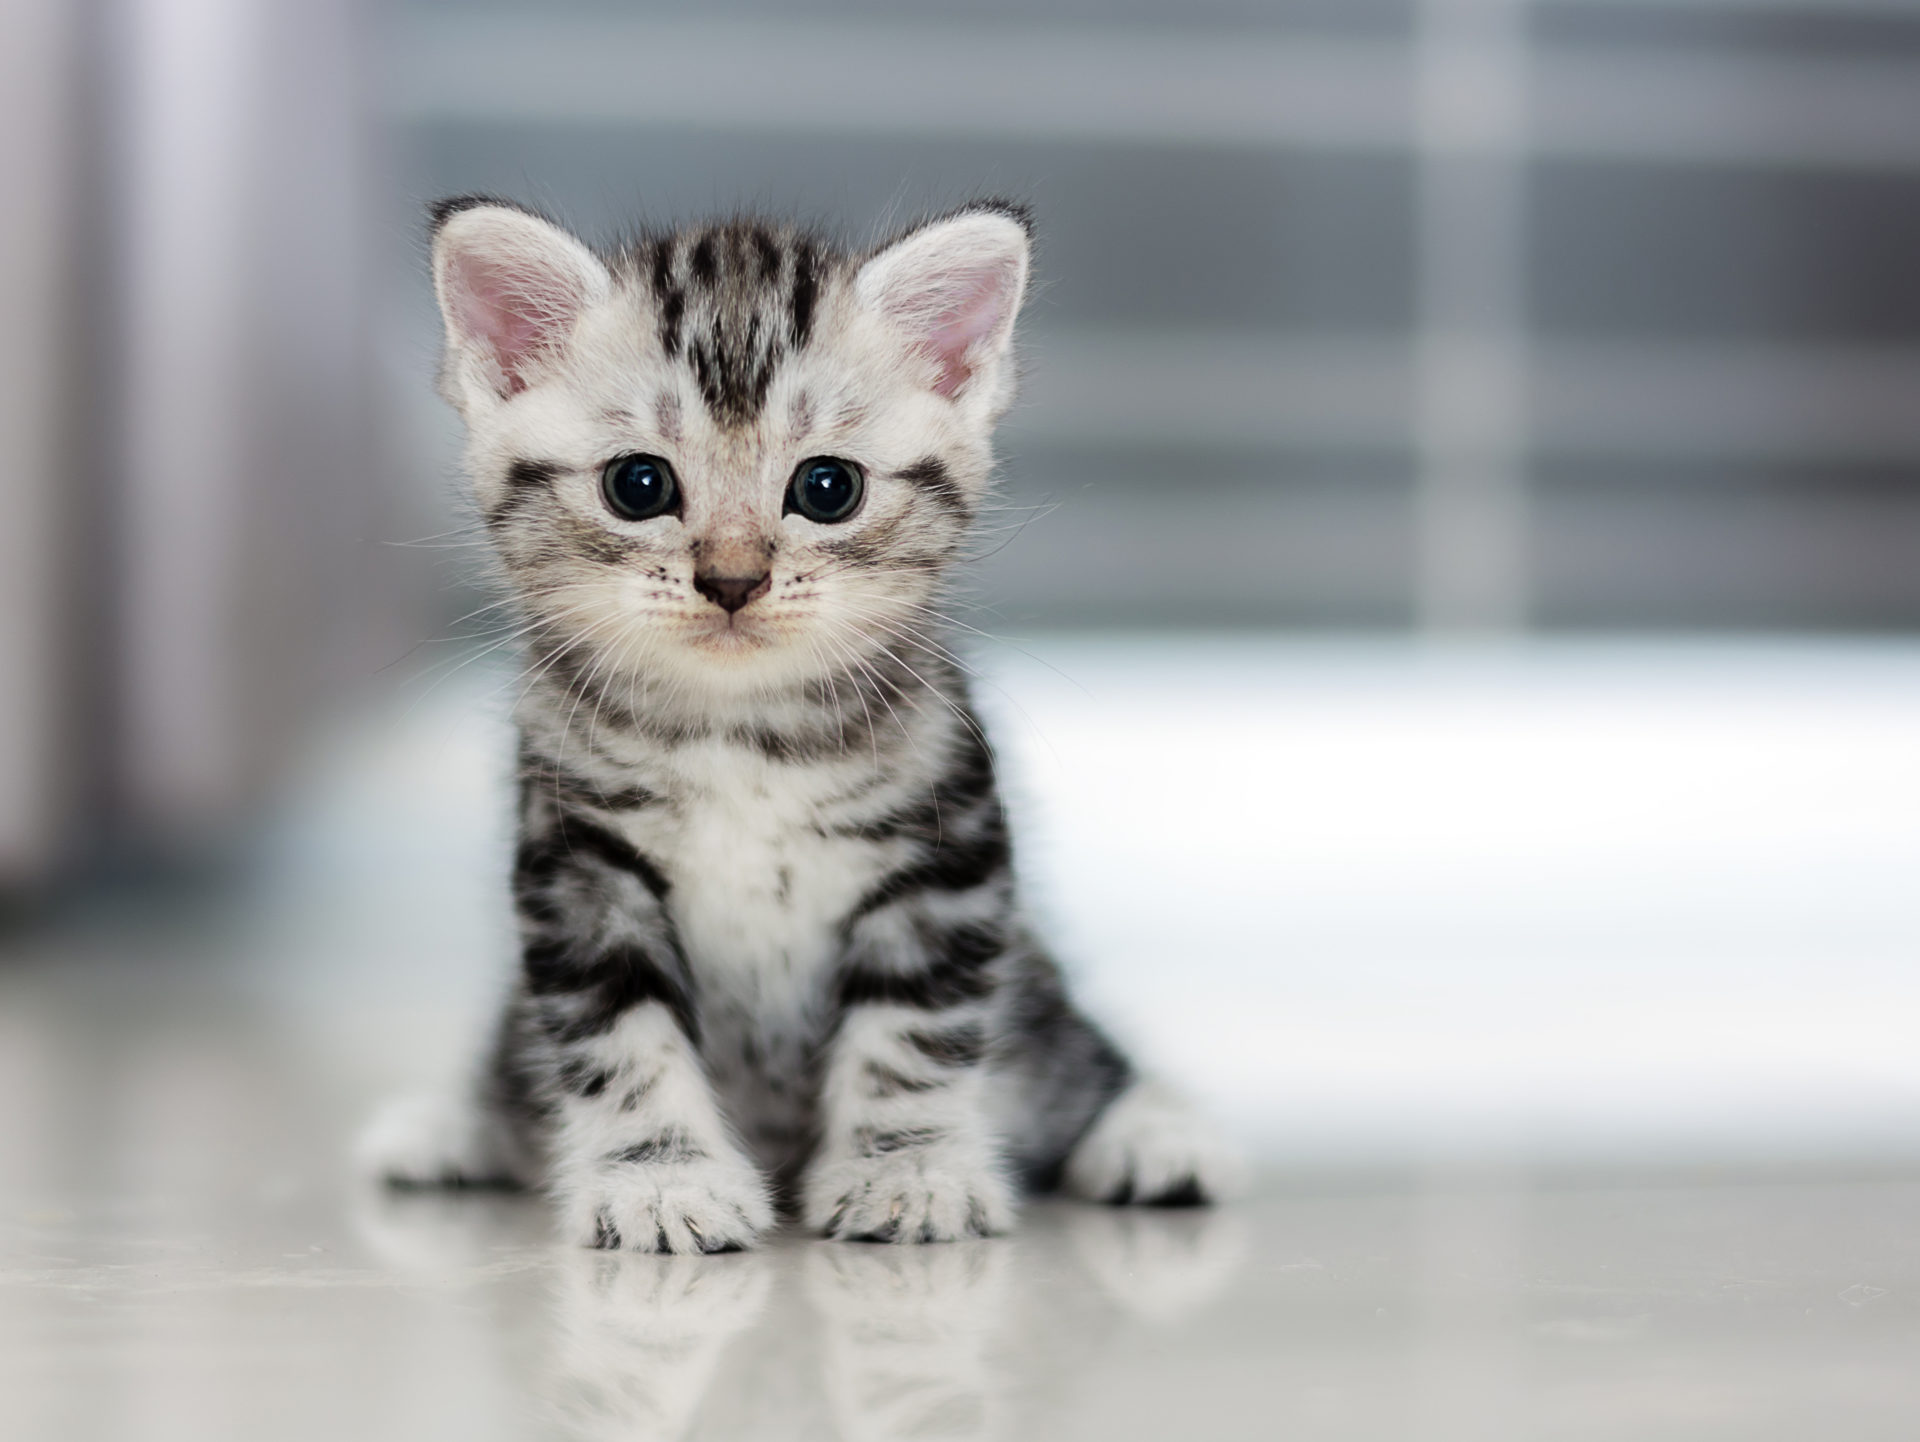 My Cats Adorable Cat Kitten Hd Wallpapers Mystart